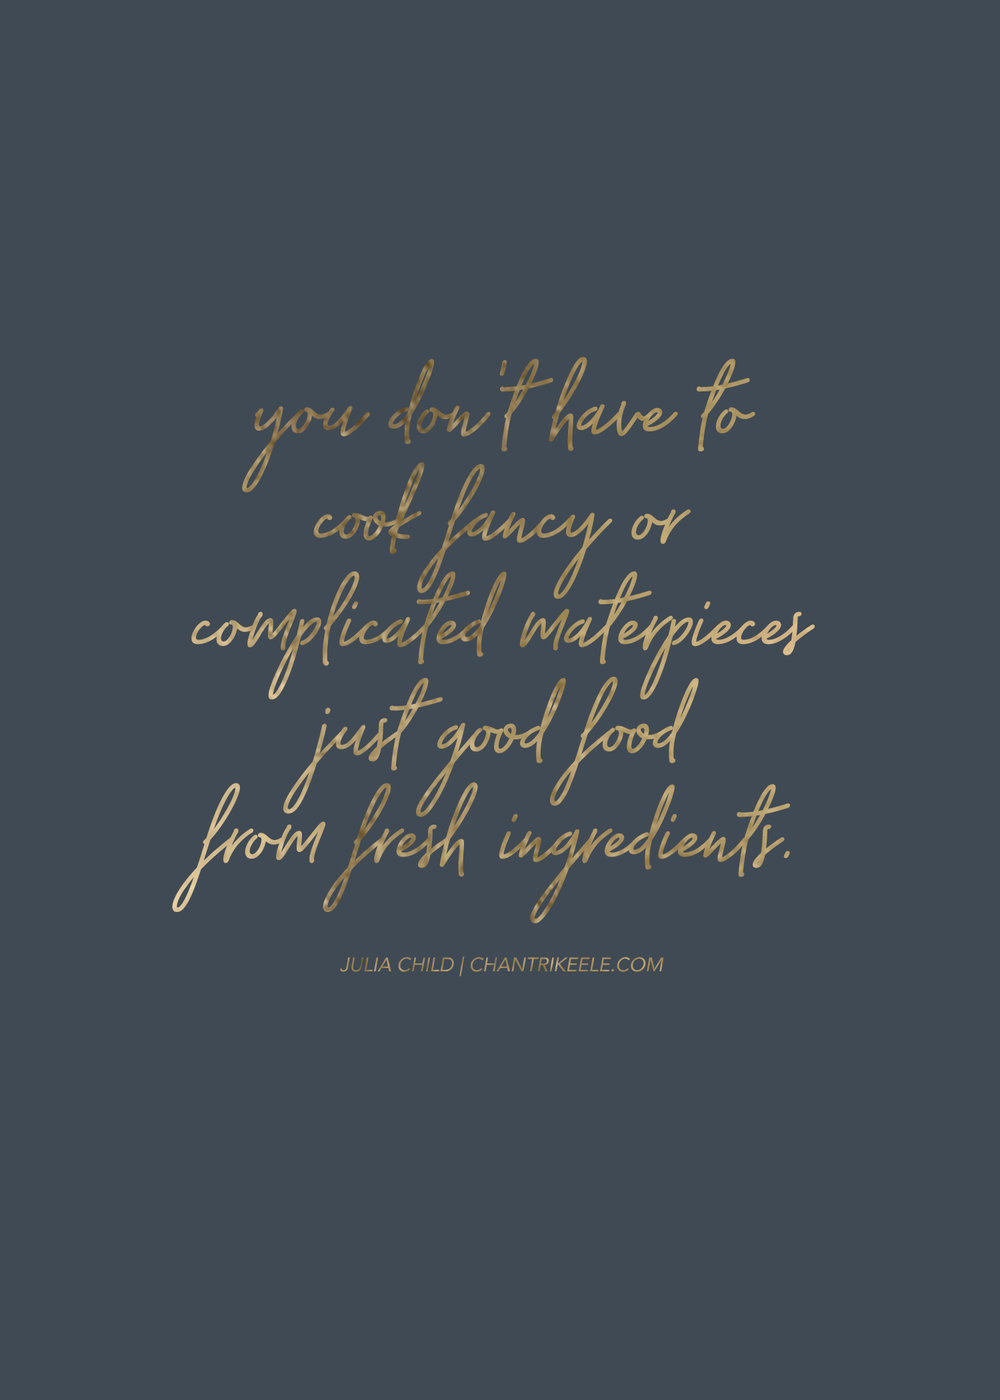 COOK GOOD FOOD- A JULIA CHILD QUOTE